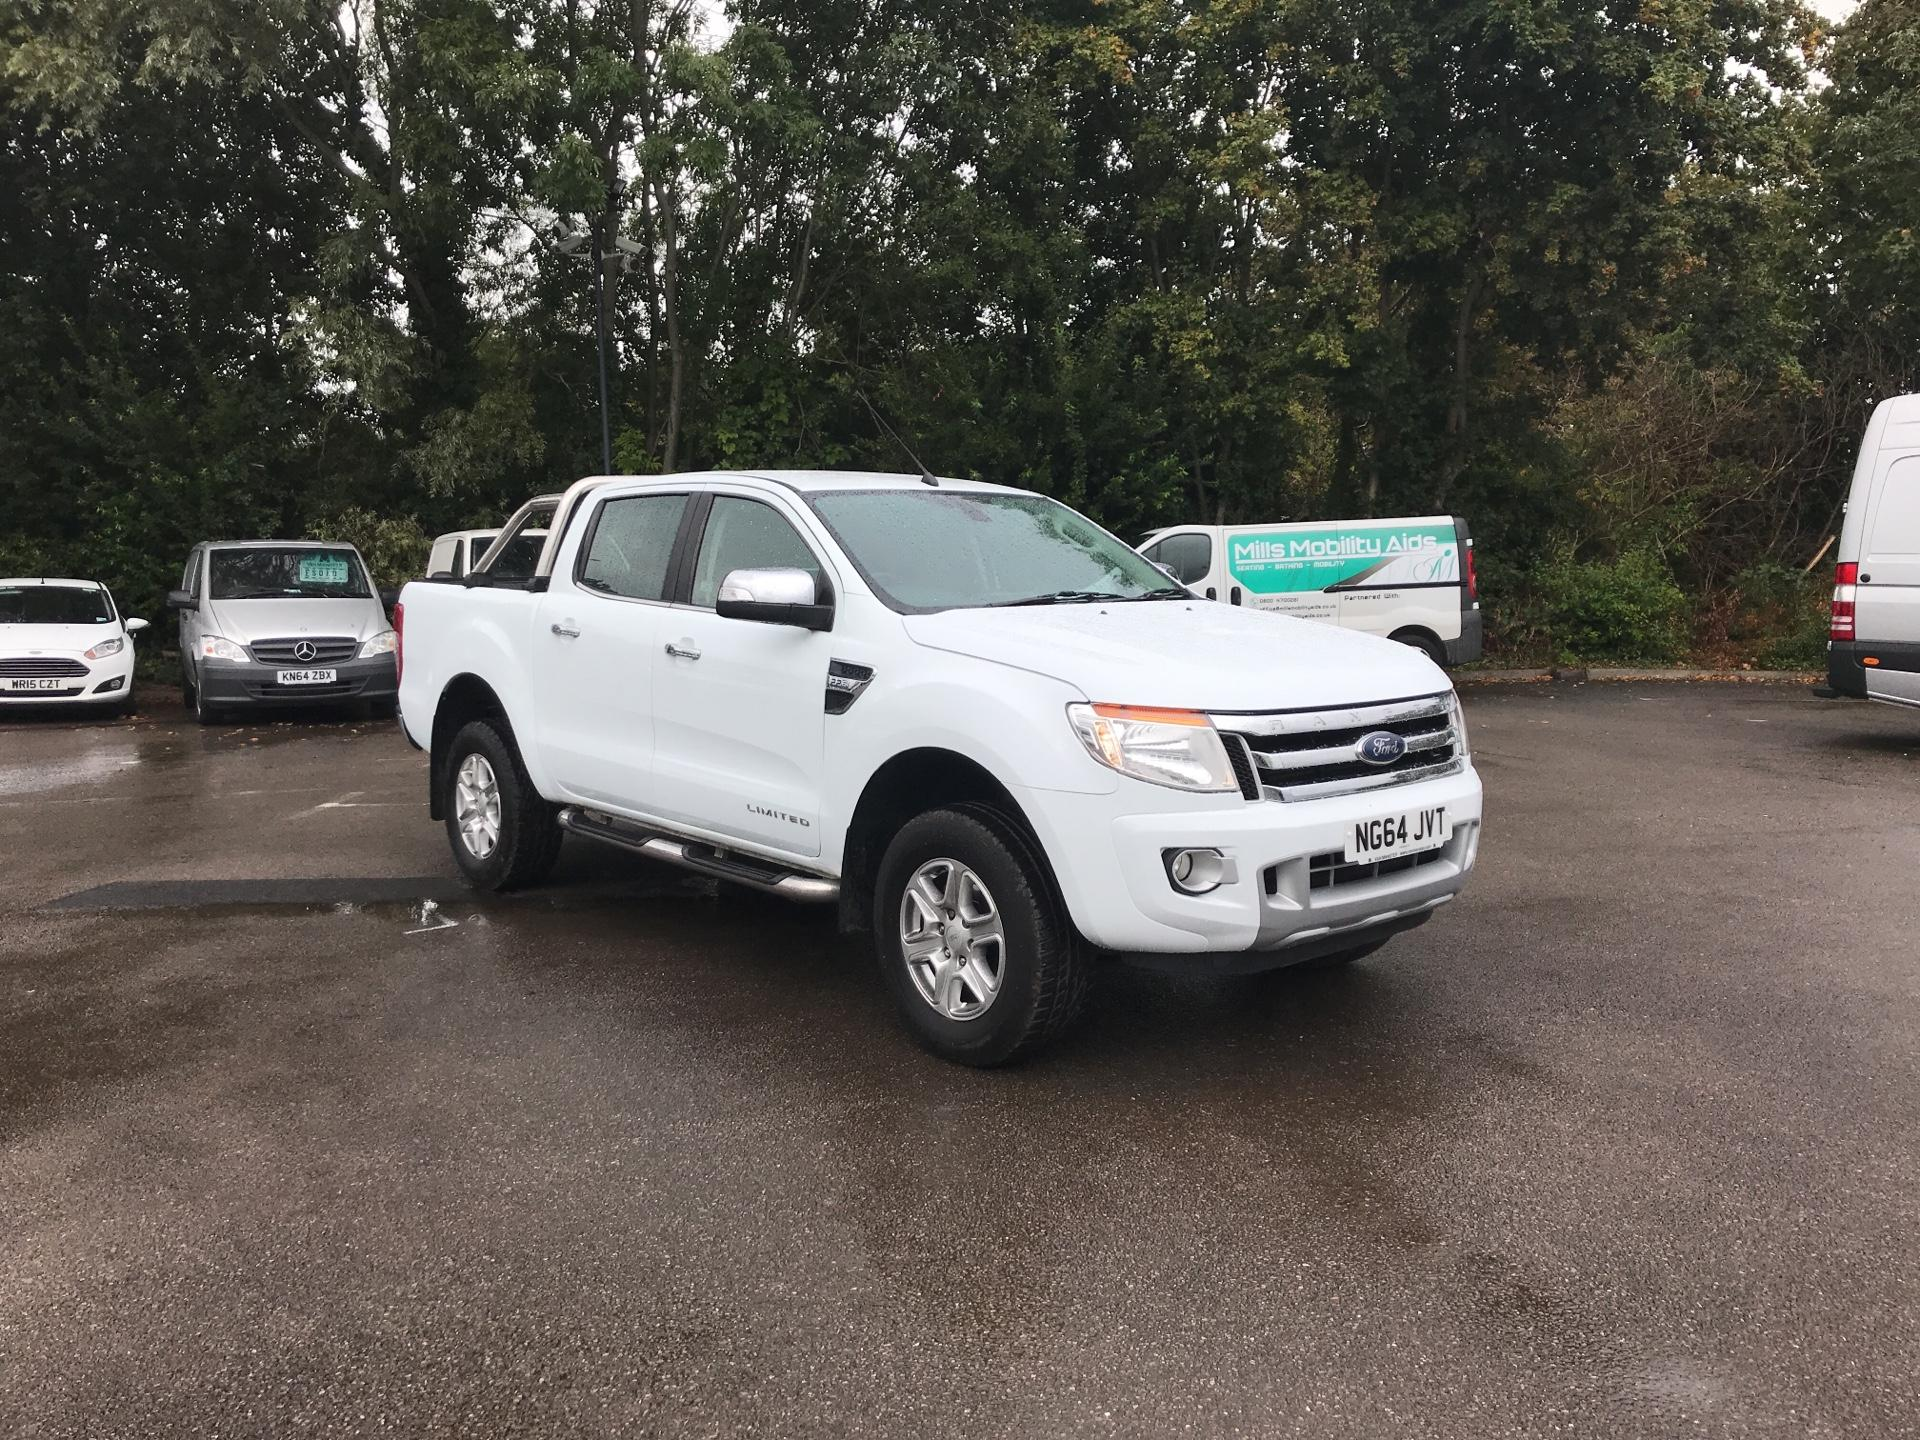 2015 Ford Ranger Double Cab Limited Pick Up  2.2 150 4WD Auto EURO 5 (NG64JVT)